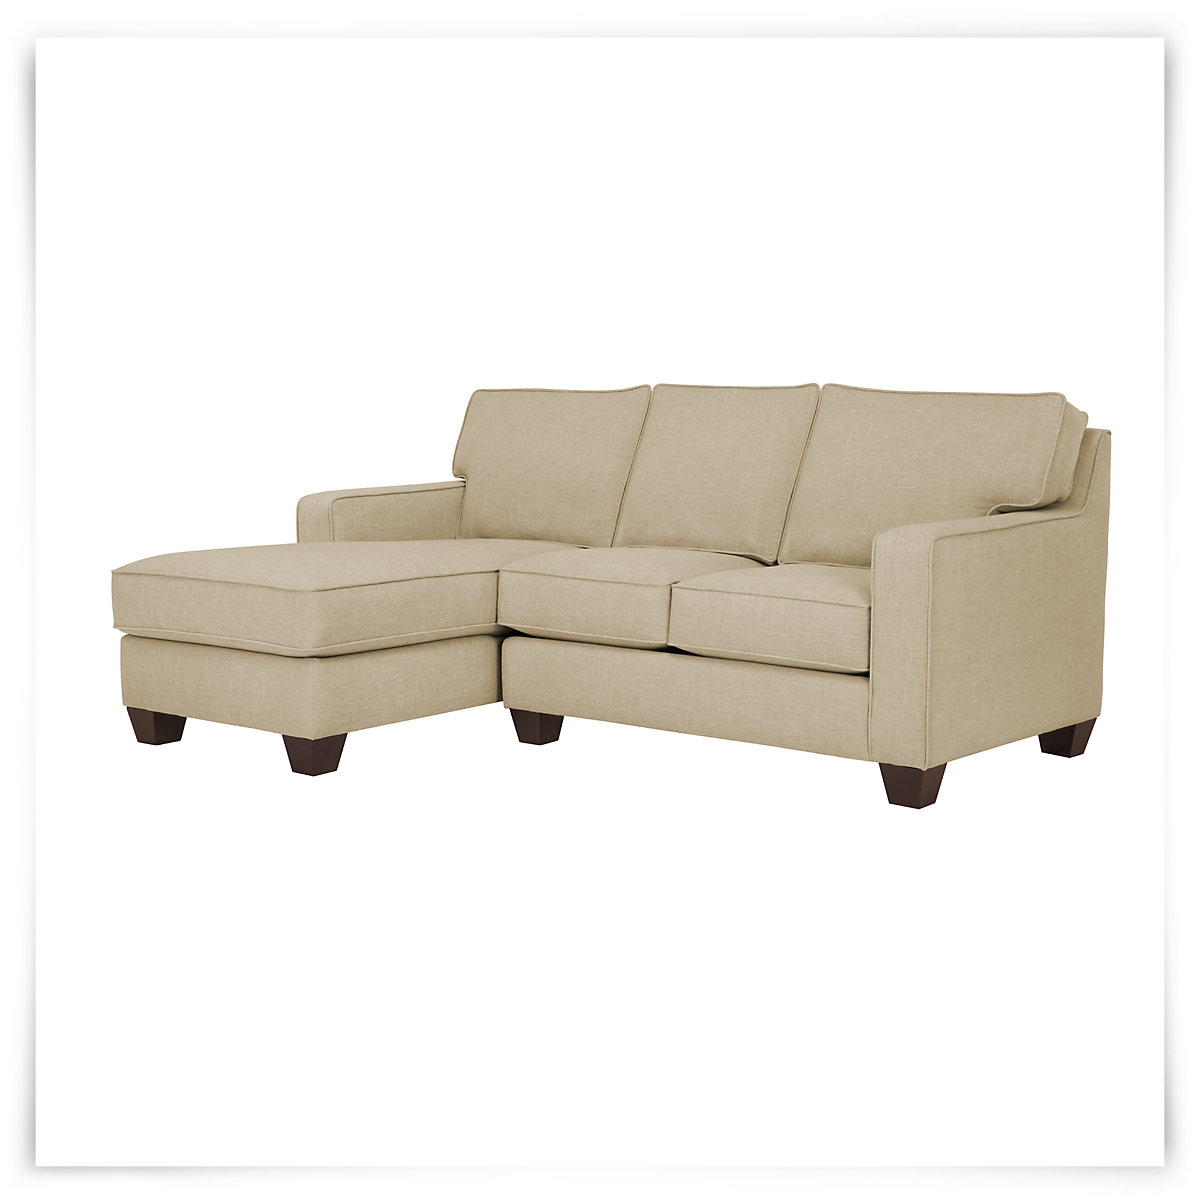 City furniture york beige fabric small left chaise sectional for Beige sectional with chaise